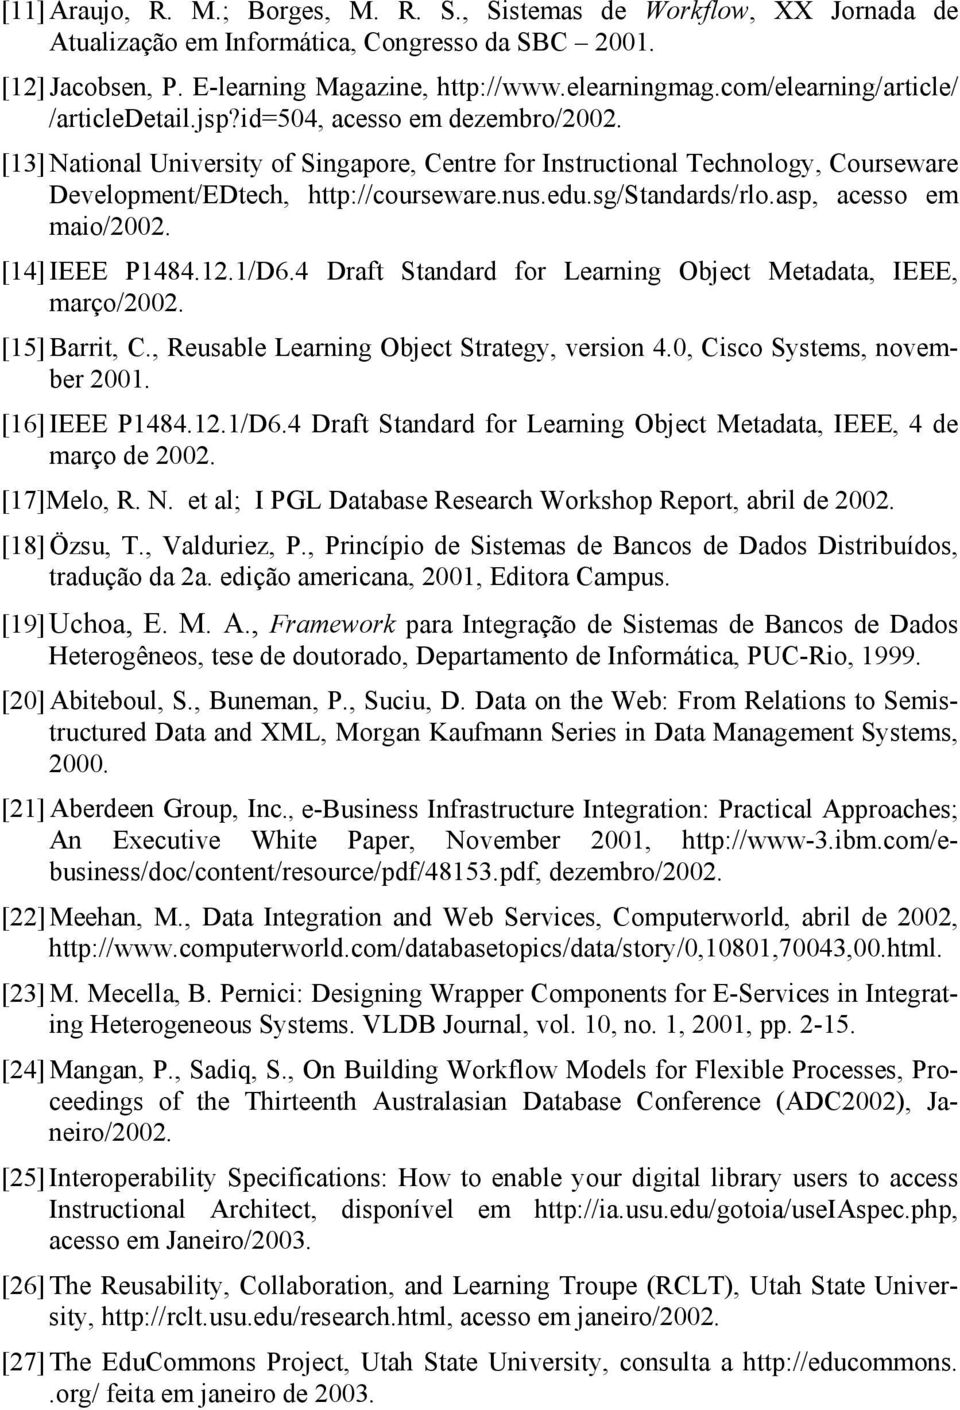 nus.edu.sg/standards/rlo.asp, acesso em maio/2002. [14] IEEE P1484.12.1/D6.4 Draft Standard for Learning Object Metadata, IEEE, março/2002. [15] Barrit, C.